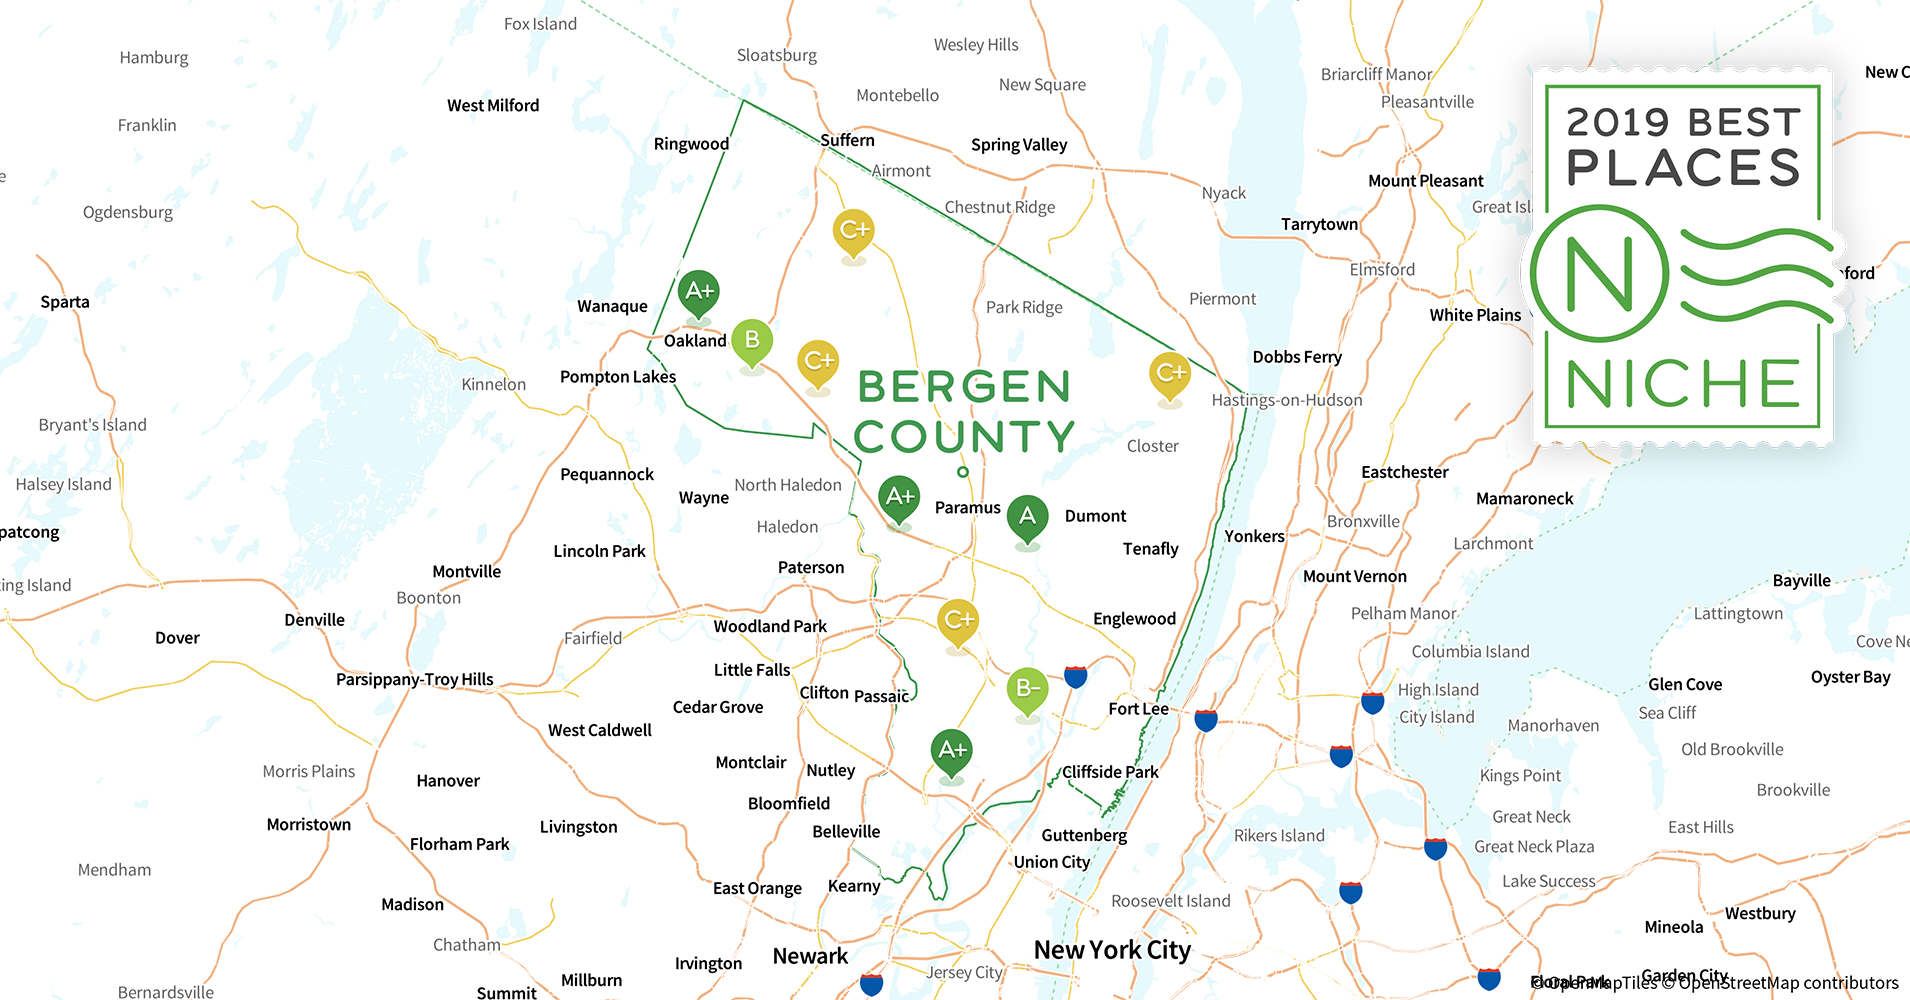 2019 Best Places to Live in Bergen County, NJ - Niche Map Bergen County Nj on morris county, burlington county, somerset nj map, oakland nj map, richmond nj map, branch brook park nj map, orange county ny map, sussex county, waterloo village nj map, edgewater neighborhood chicago map, river edge nj map, sparta township nj map, independence township nj map, passaic county, radburn nj map, hudson county, oradell nj map, middlesex county, mercer county, palisades interstate parkway nj map, musconetcong river nj map, somerset county, westchester county, union county map, hunterdon county, essex county, rockland county, monmouth county, parsippany nj map, warren county, pittsburgh nj map, greenwich township nj map, maryland nj map, union county, delran township nj map, jersey city,